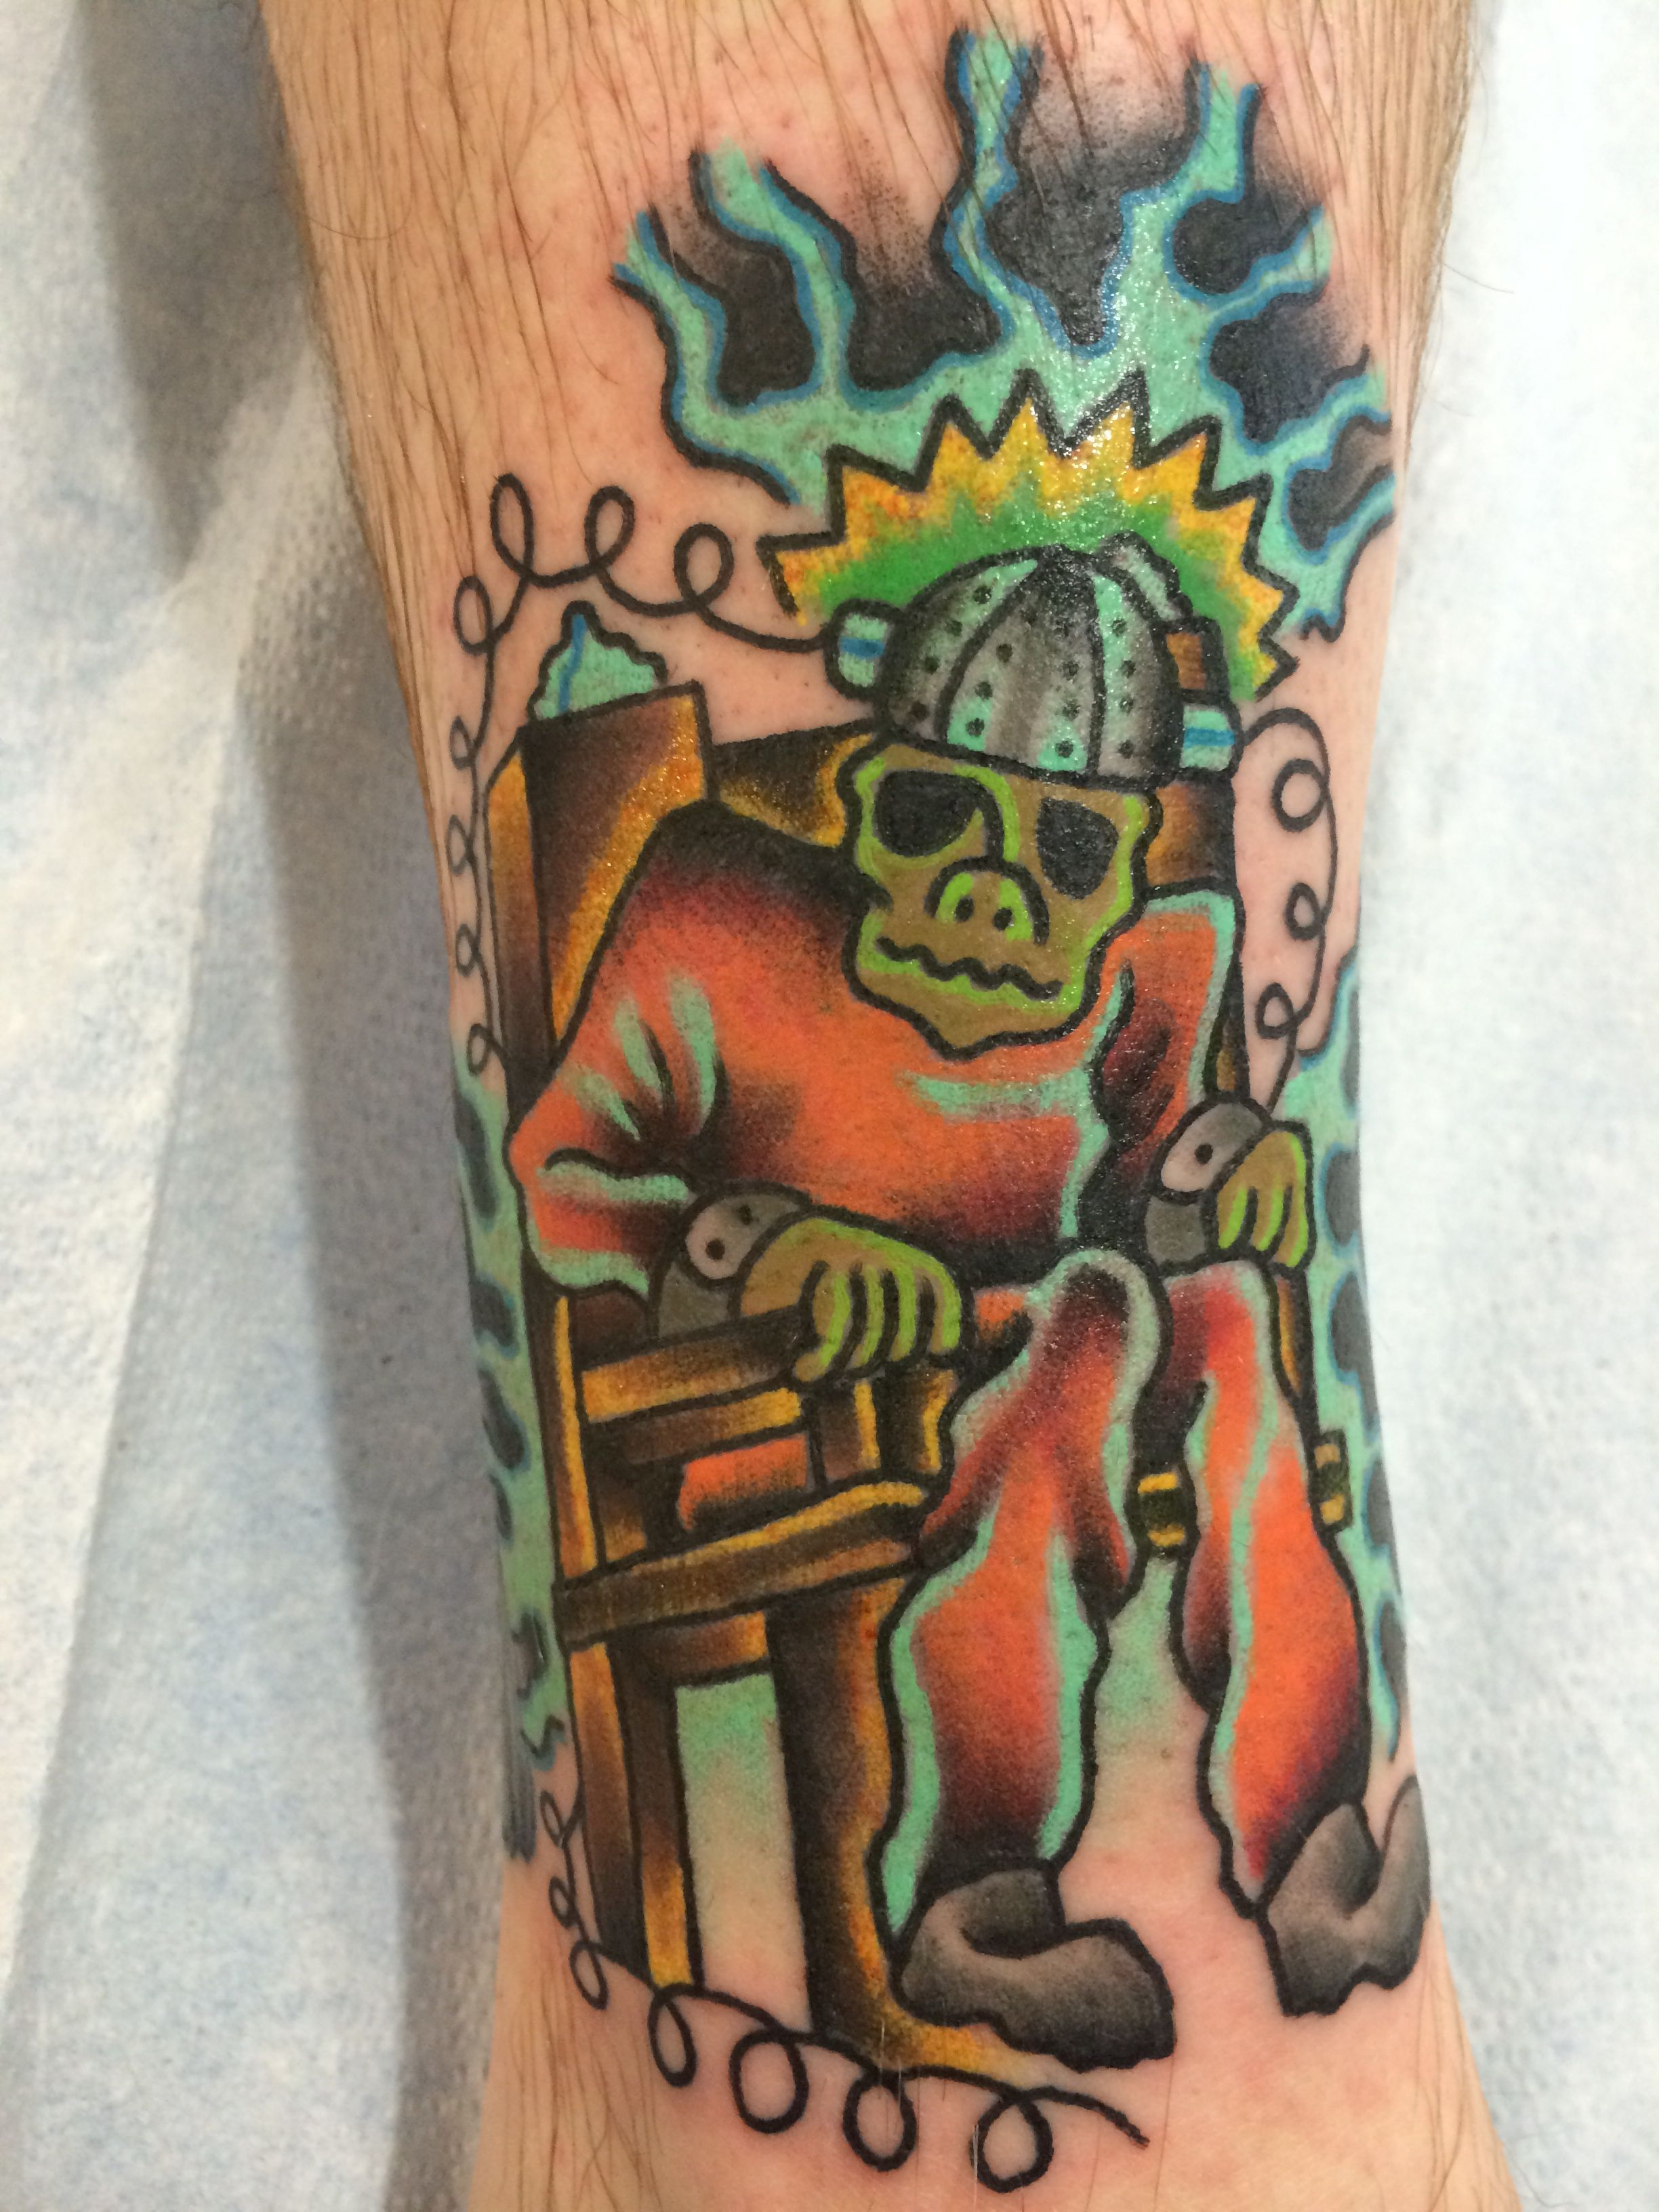 Electric chair guy i made tradional tattoo drinking tea